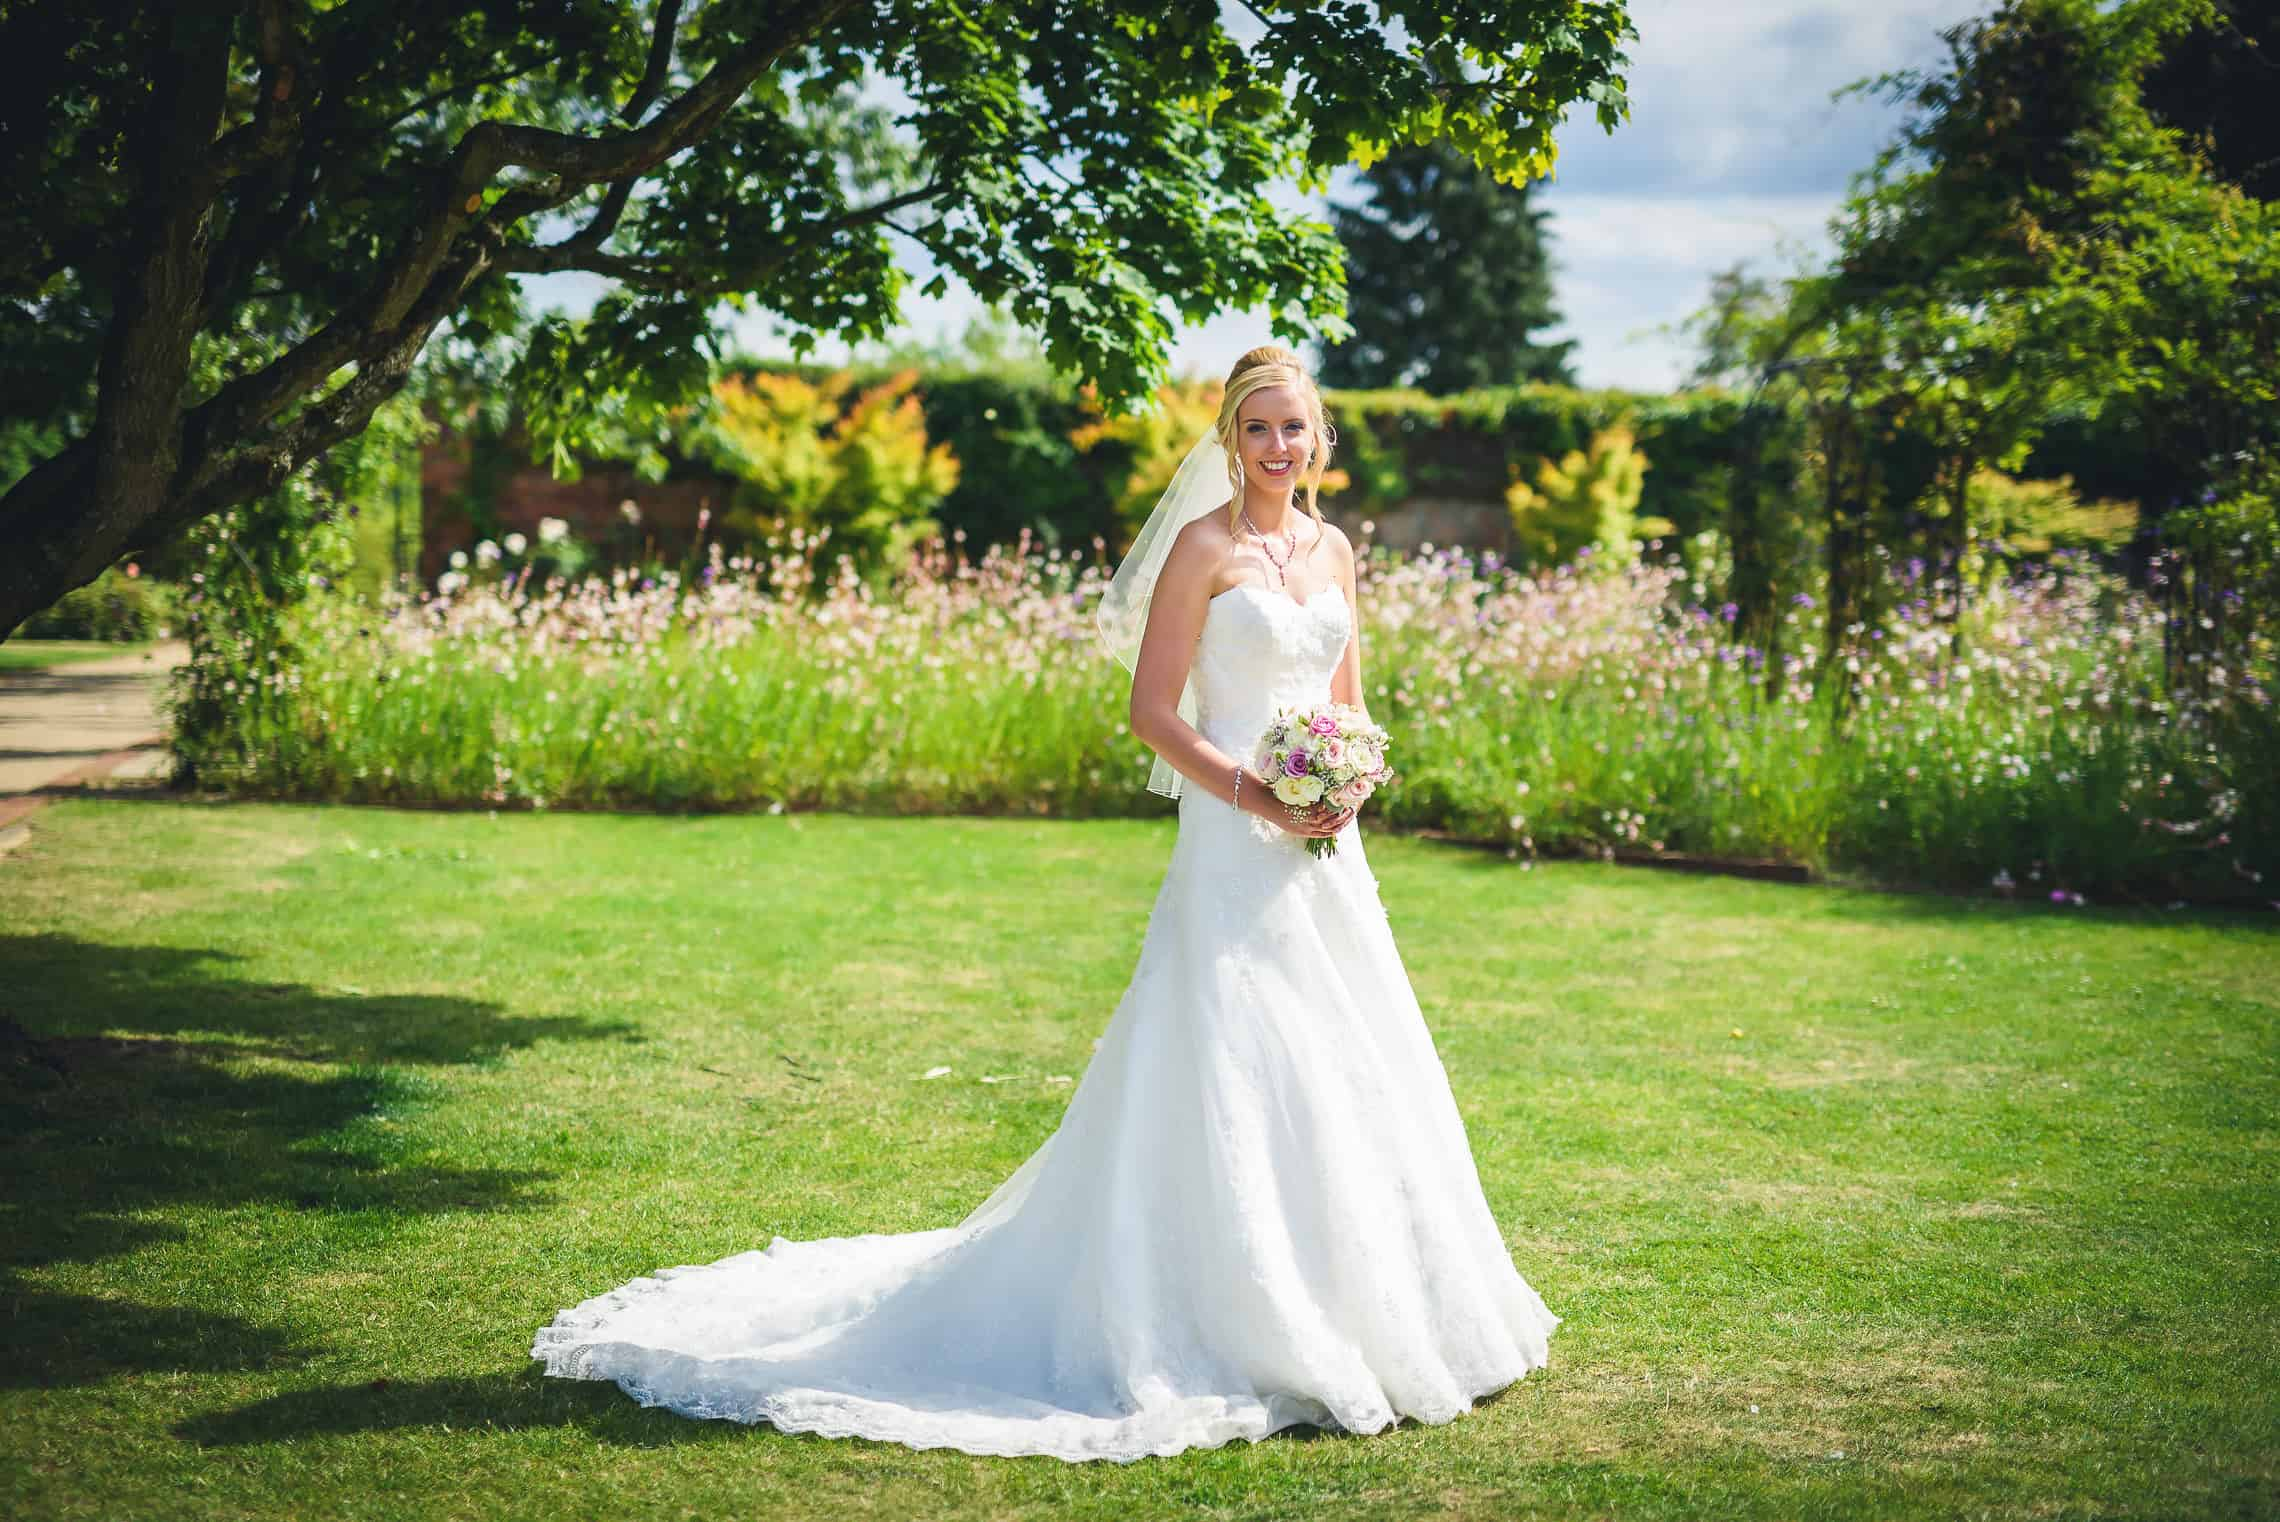 gaynes_park_wedding_lm_justin_bailey_photography_011